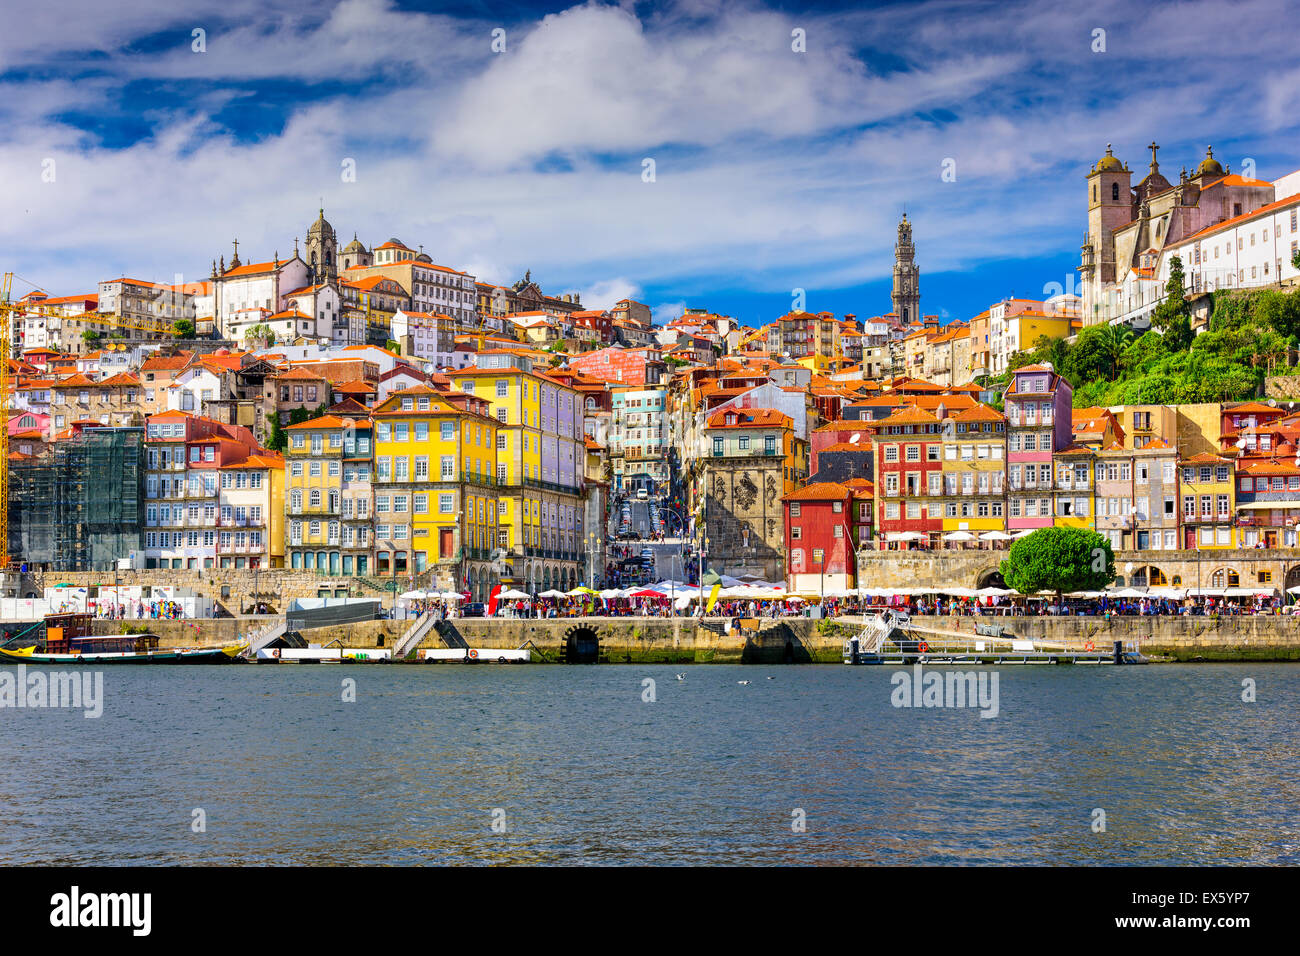 Porto, Portugal old town skyline from across the Douro River. Stock Photo